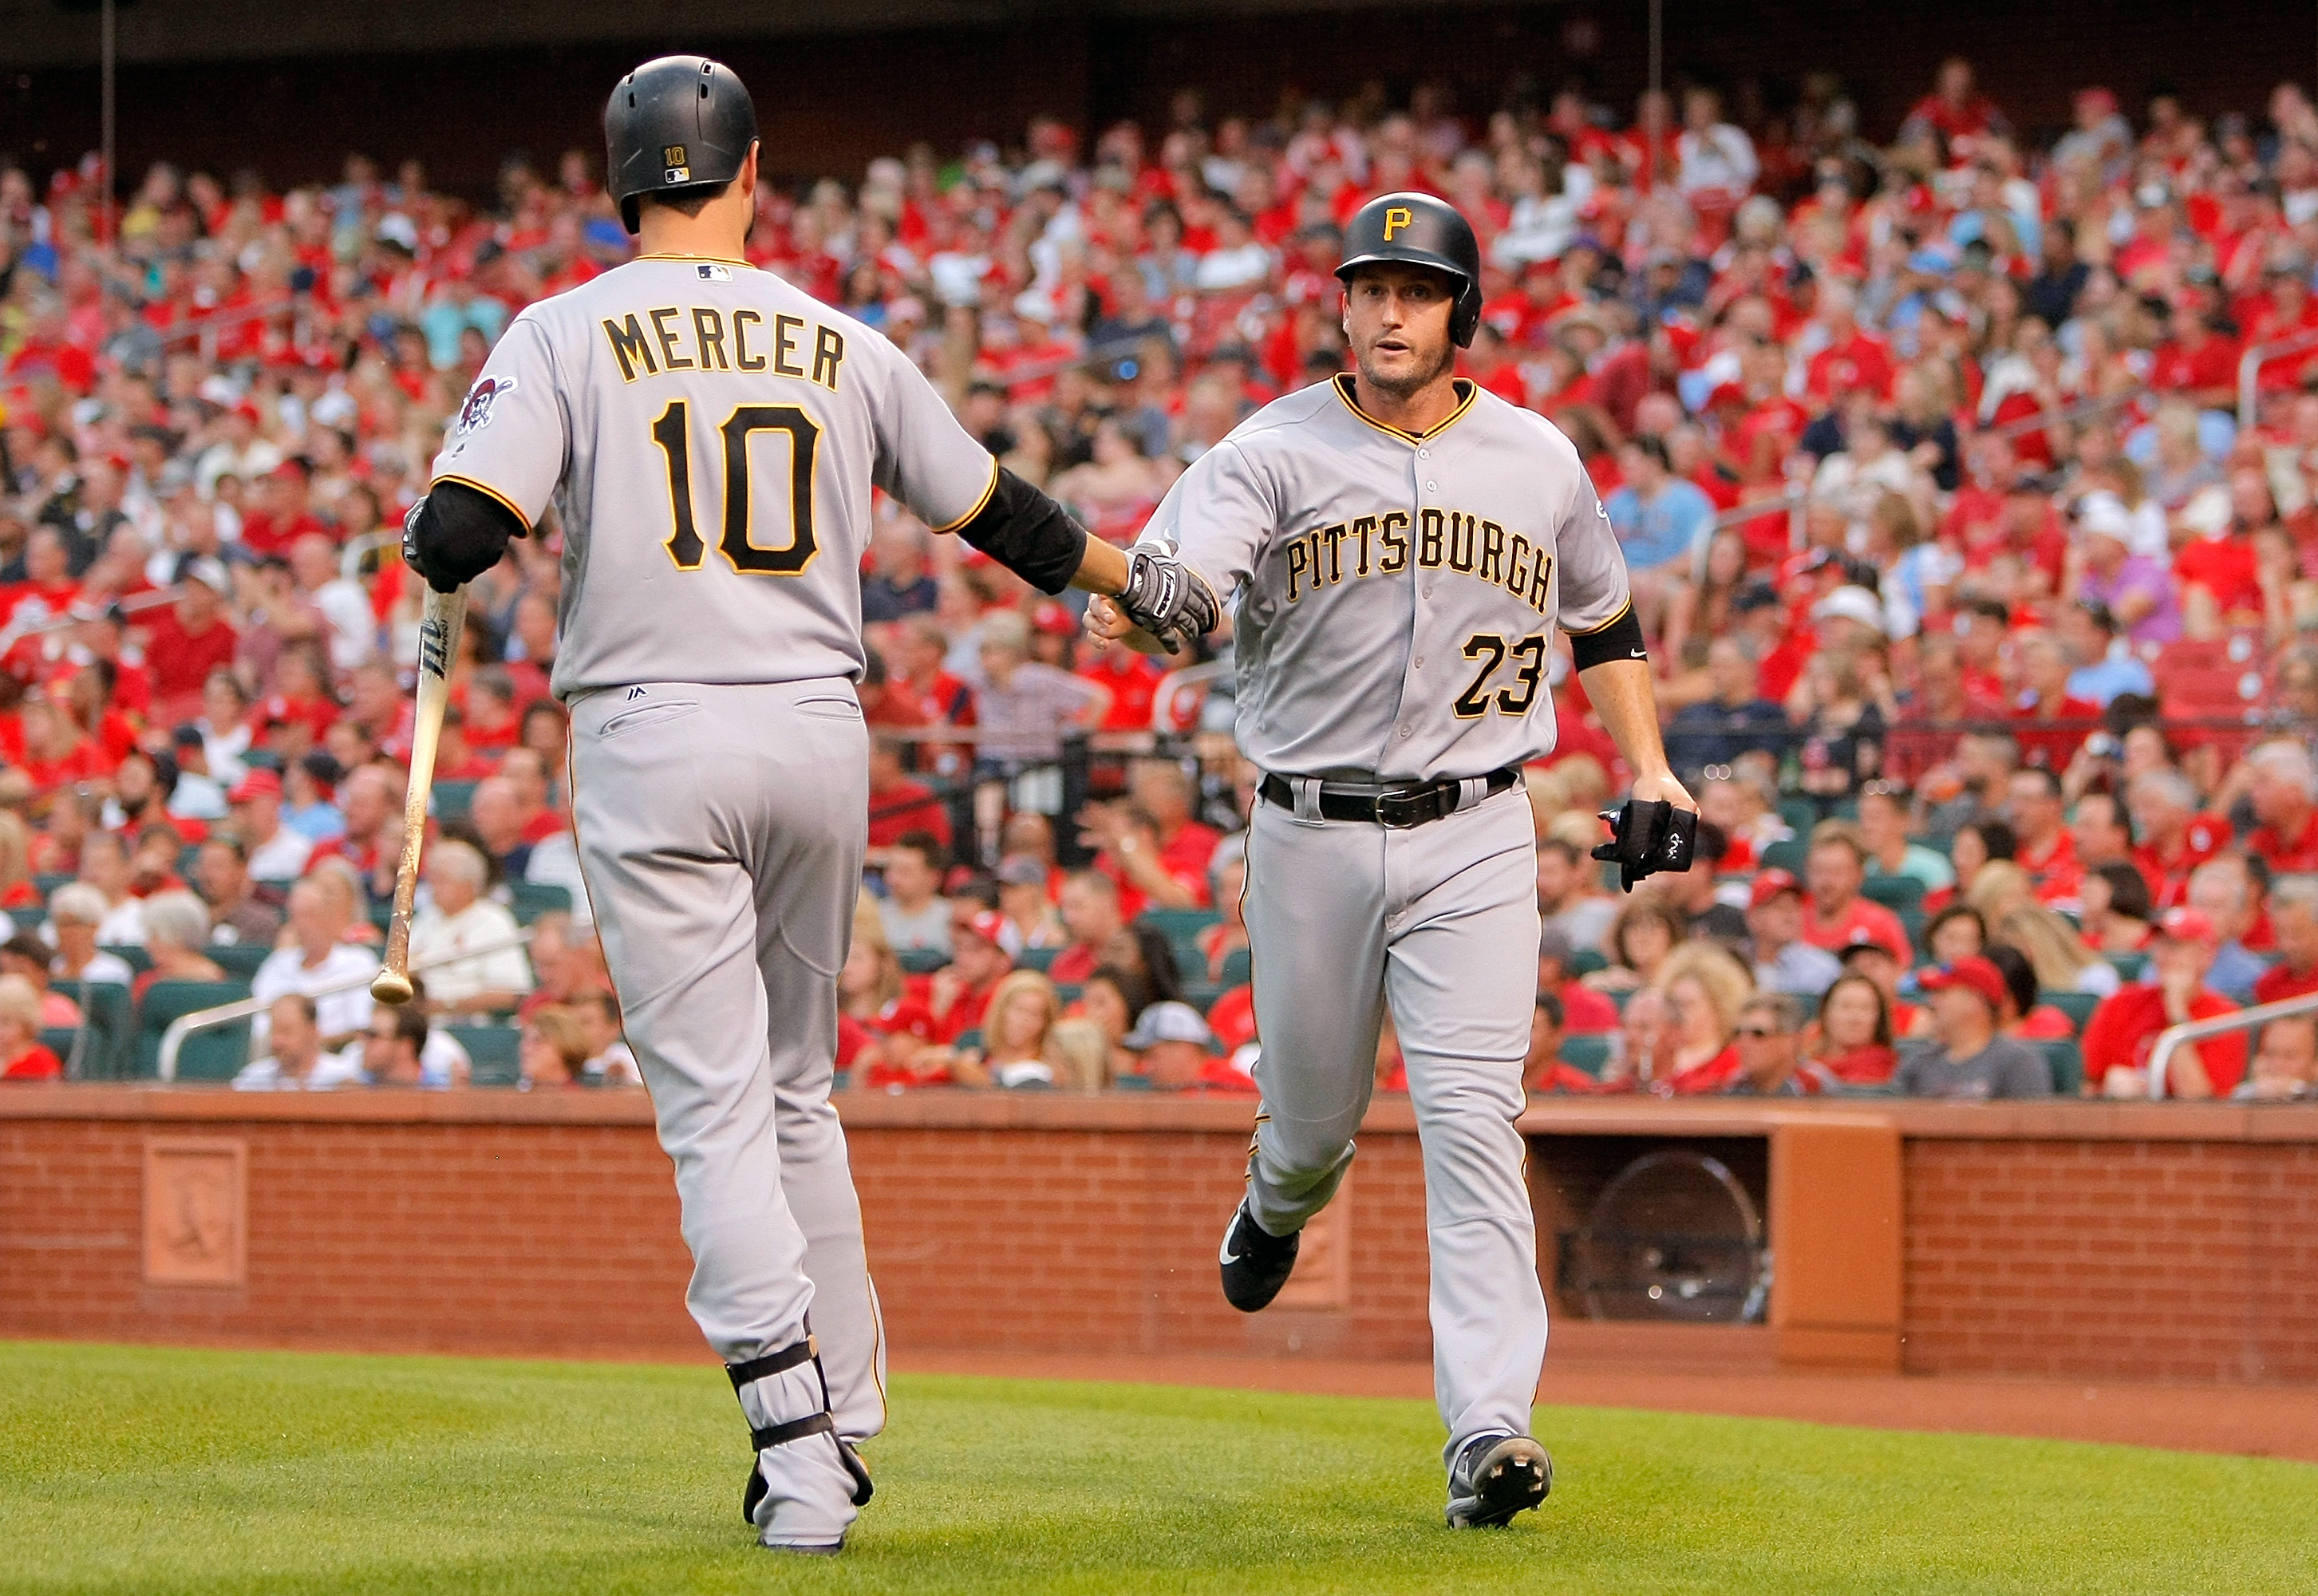 10127809-mlb-pittsburgh-pirates-at-st.-louis-cardinals